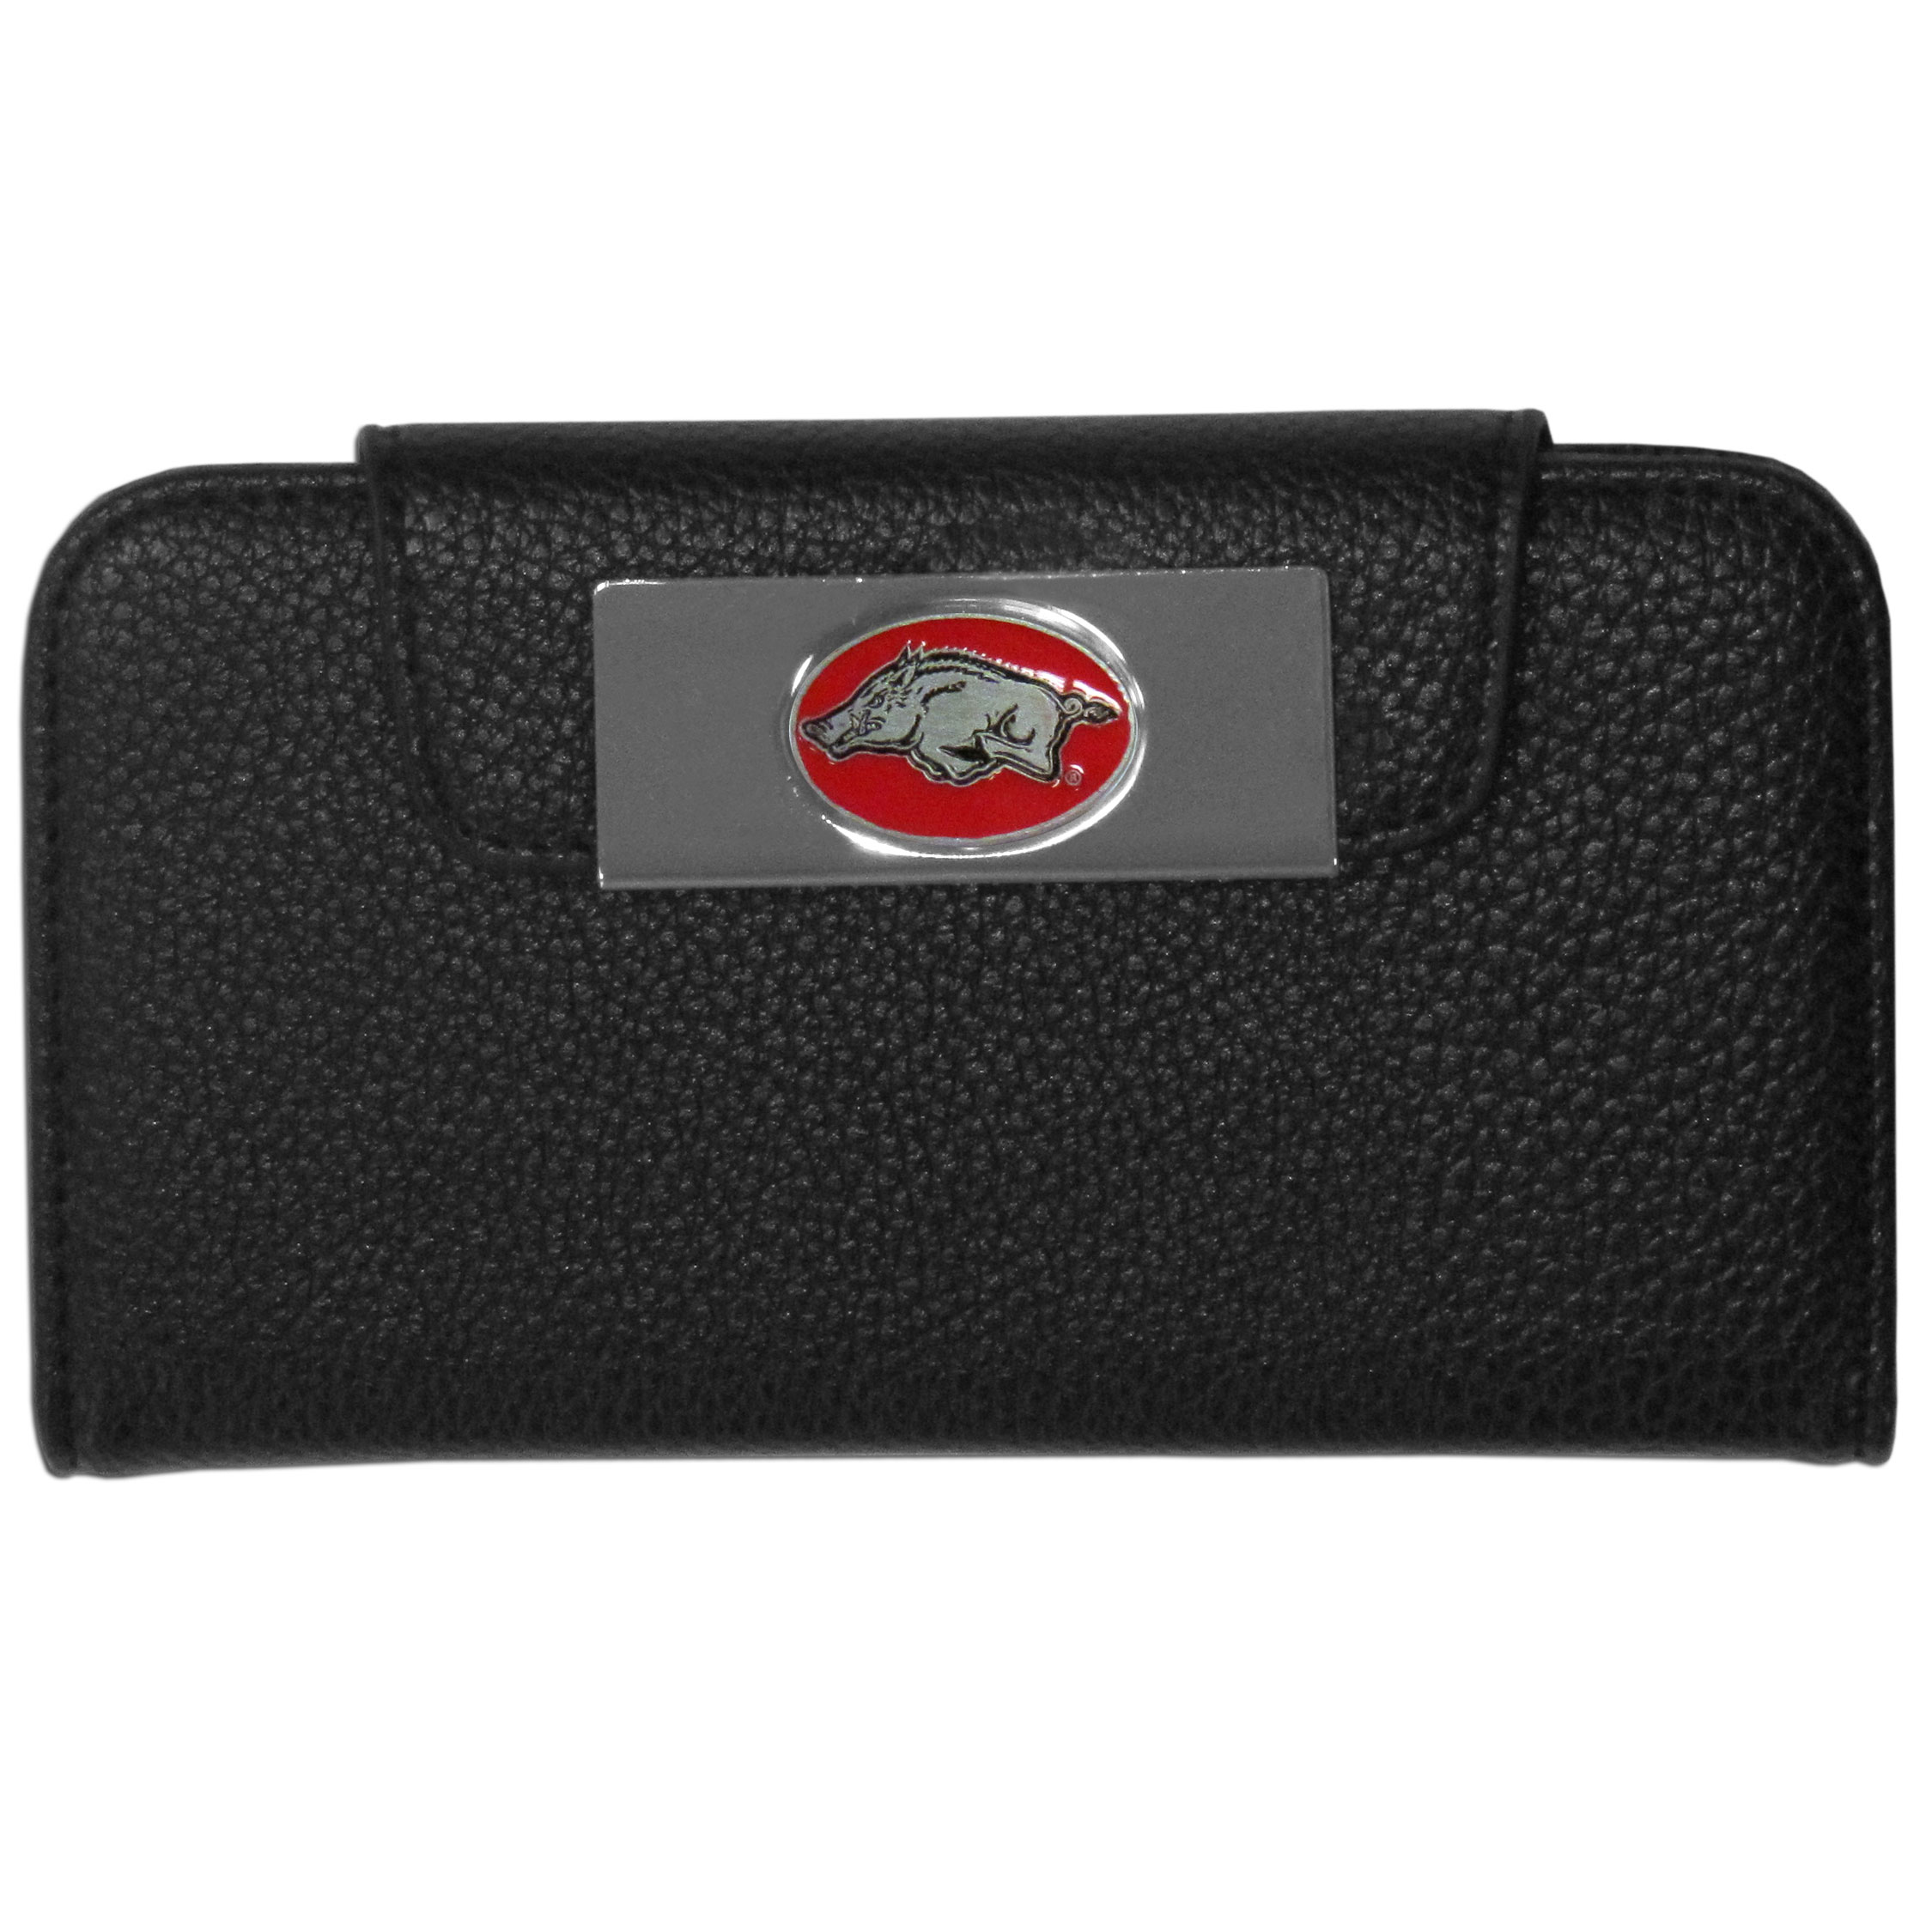 Arkansas Razorbacks iPhone 5/5S Wallet Case - This new & wildly popular case is ideal for those who like to travel light! The stylish case has an inner hard shell that securely holds your phone while allowing complete access to the phone's functionality. The flip cover has slots for credit cards, business cards and identification. The magnetic flip cover has a metal Arkansas Razorbacks emblem on a high polish chrome backing. Fits the iPhone 5/5S